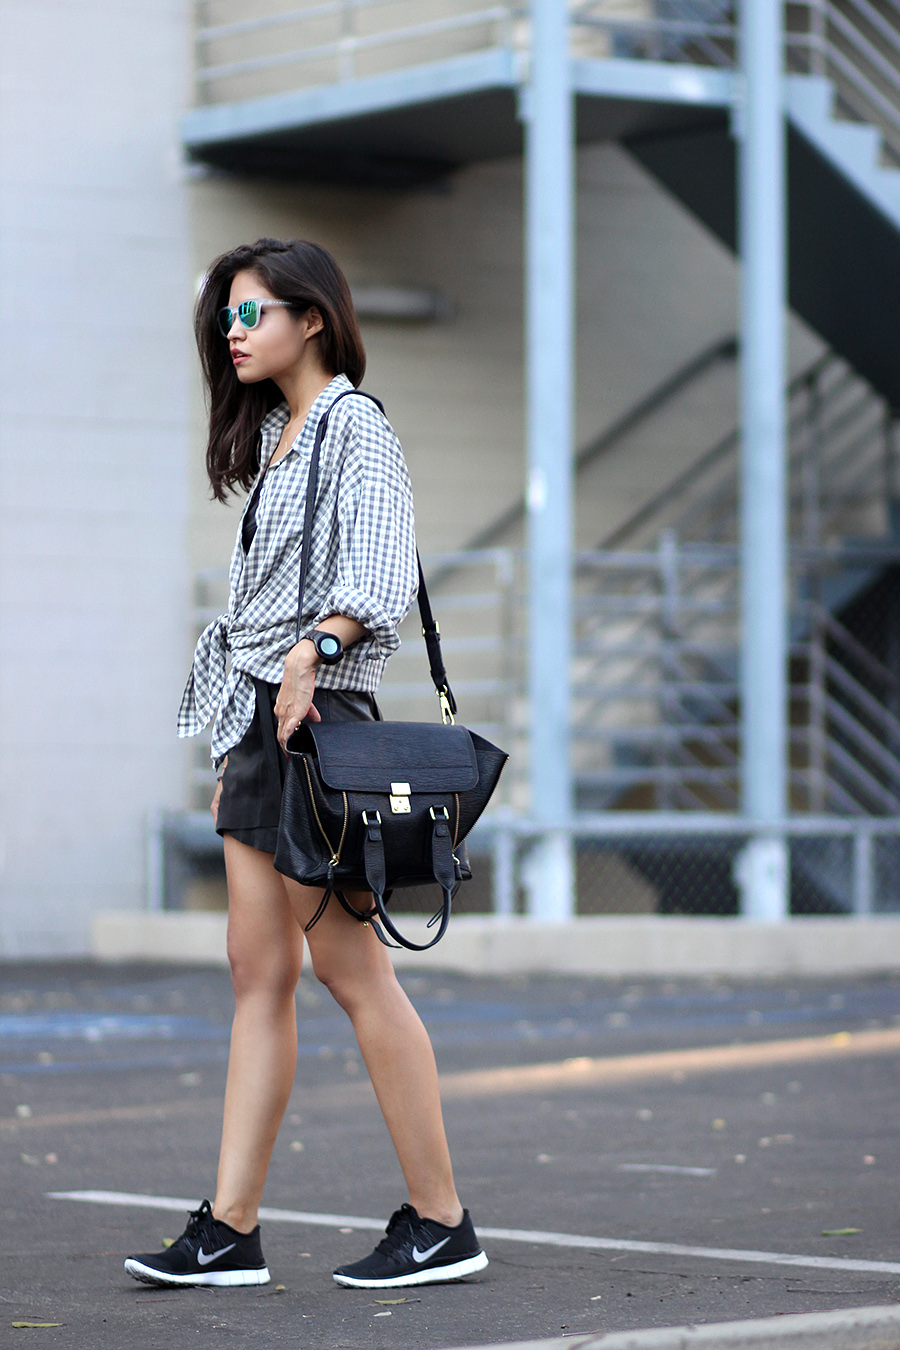 Adriana Gastélum is wearing a gingham shirt from Young Hungry Free, crop top from Zara, black skirt from Maje, bag from 3.1 Phillip Lim, mirrored sunglasses from Hawckers and the sneakers are from Nike